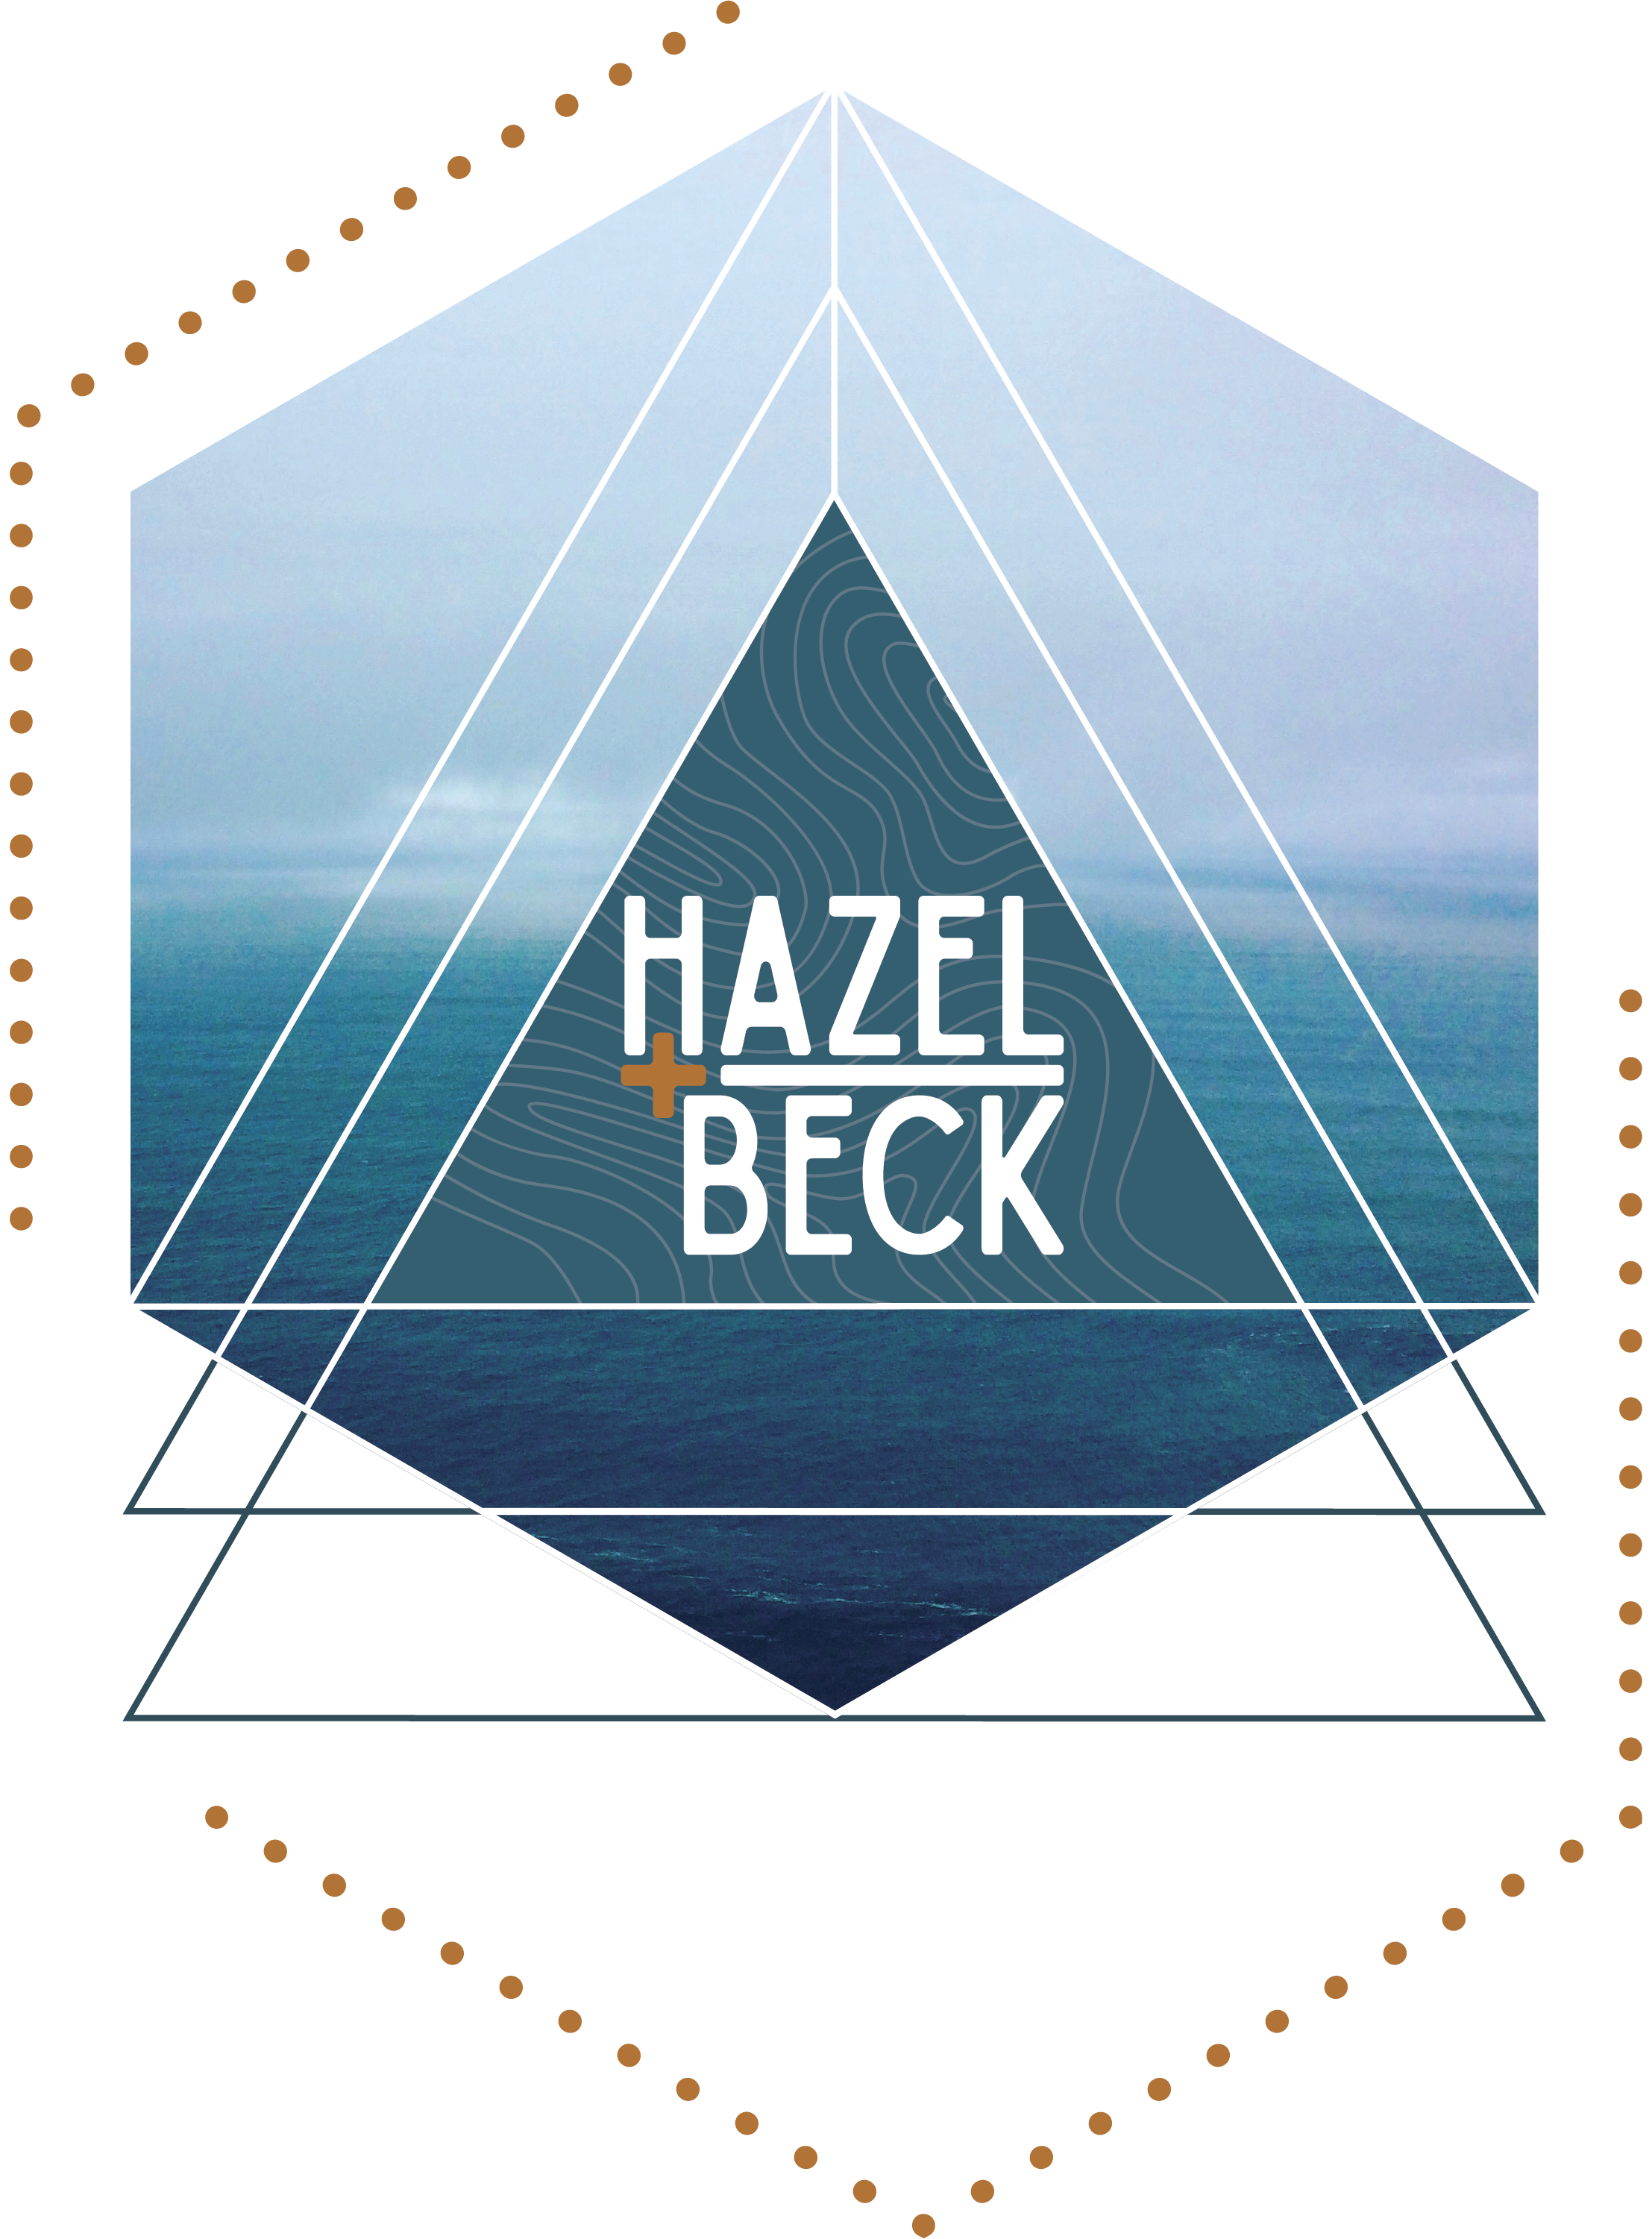 MAIN LOGO   From the first round of client presentations:   This concept incorporates the stylized topographic motif with geometric shapes invoking concepts of sacred geometry in a stylized way. The placement of the triangles gives nod to the mountains as well as the trees the grow in them. The image of the water meeting the horizon is both iconic as well as anonymous, paying homage to the element of water. While a complex design, the elements of each component are strong and simple which creates an icon logo for a lasting impression.    The stylized and deconstructed hexagon creates a border as well as warmth with the contrasting goldenrod color.